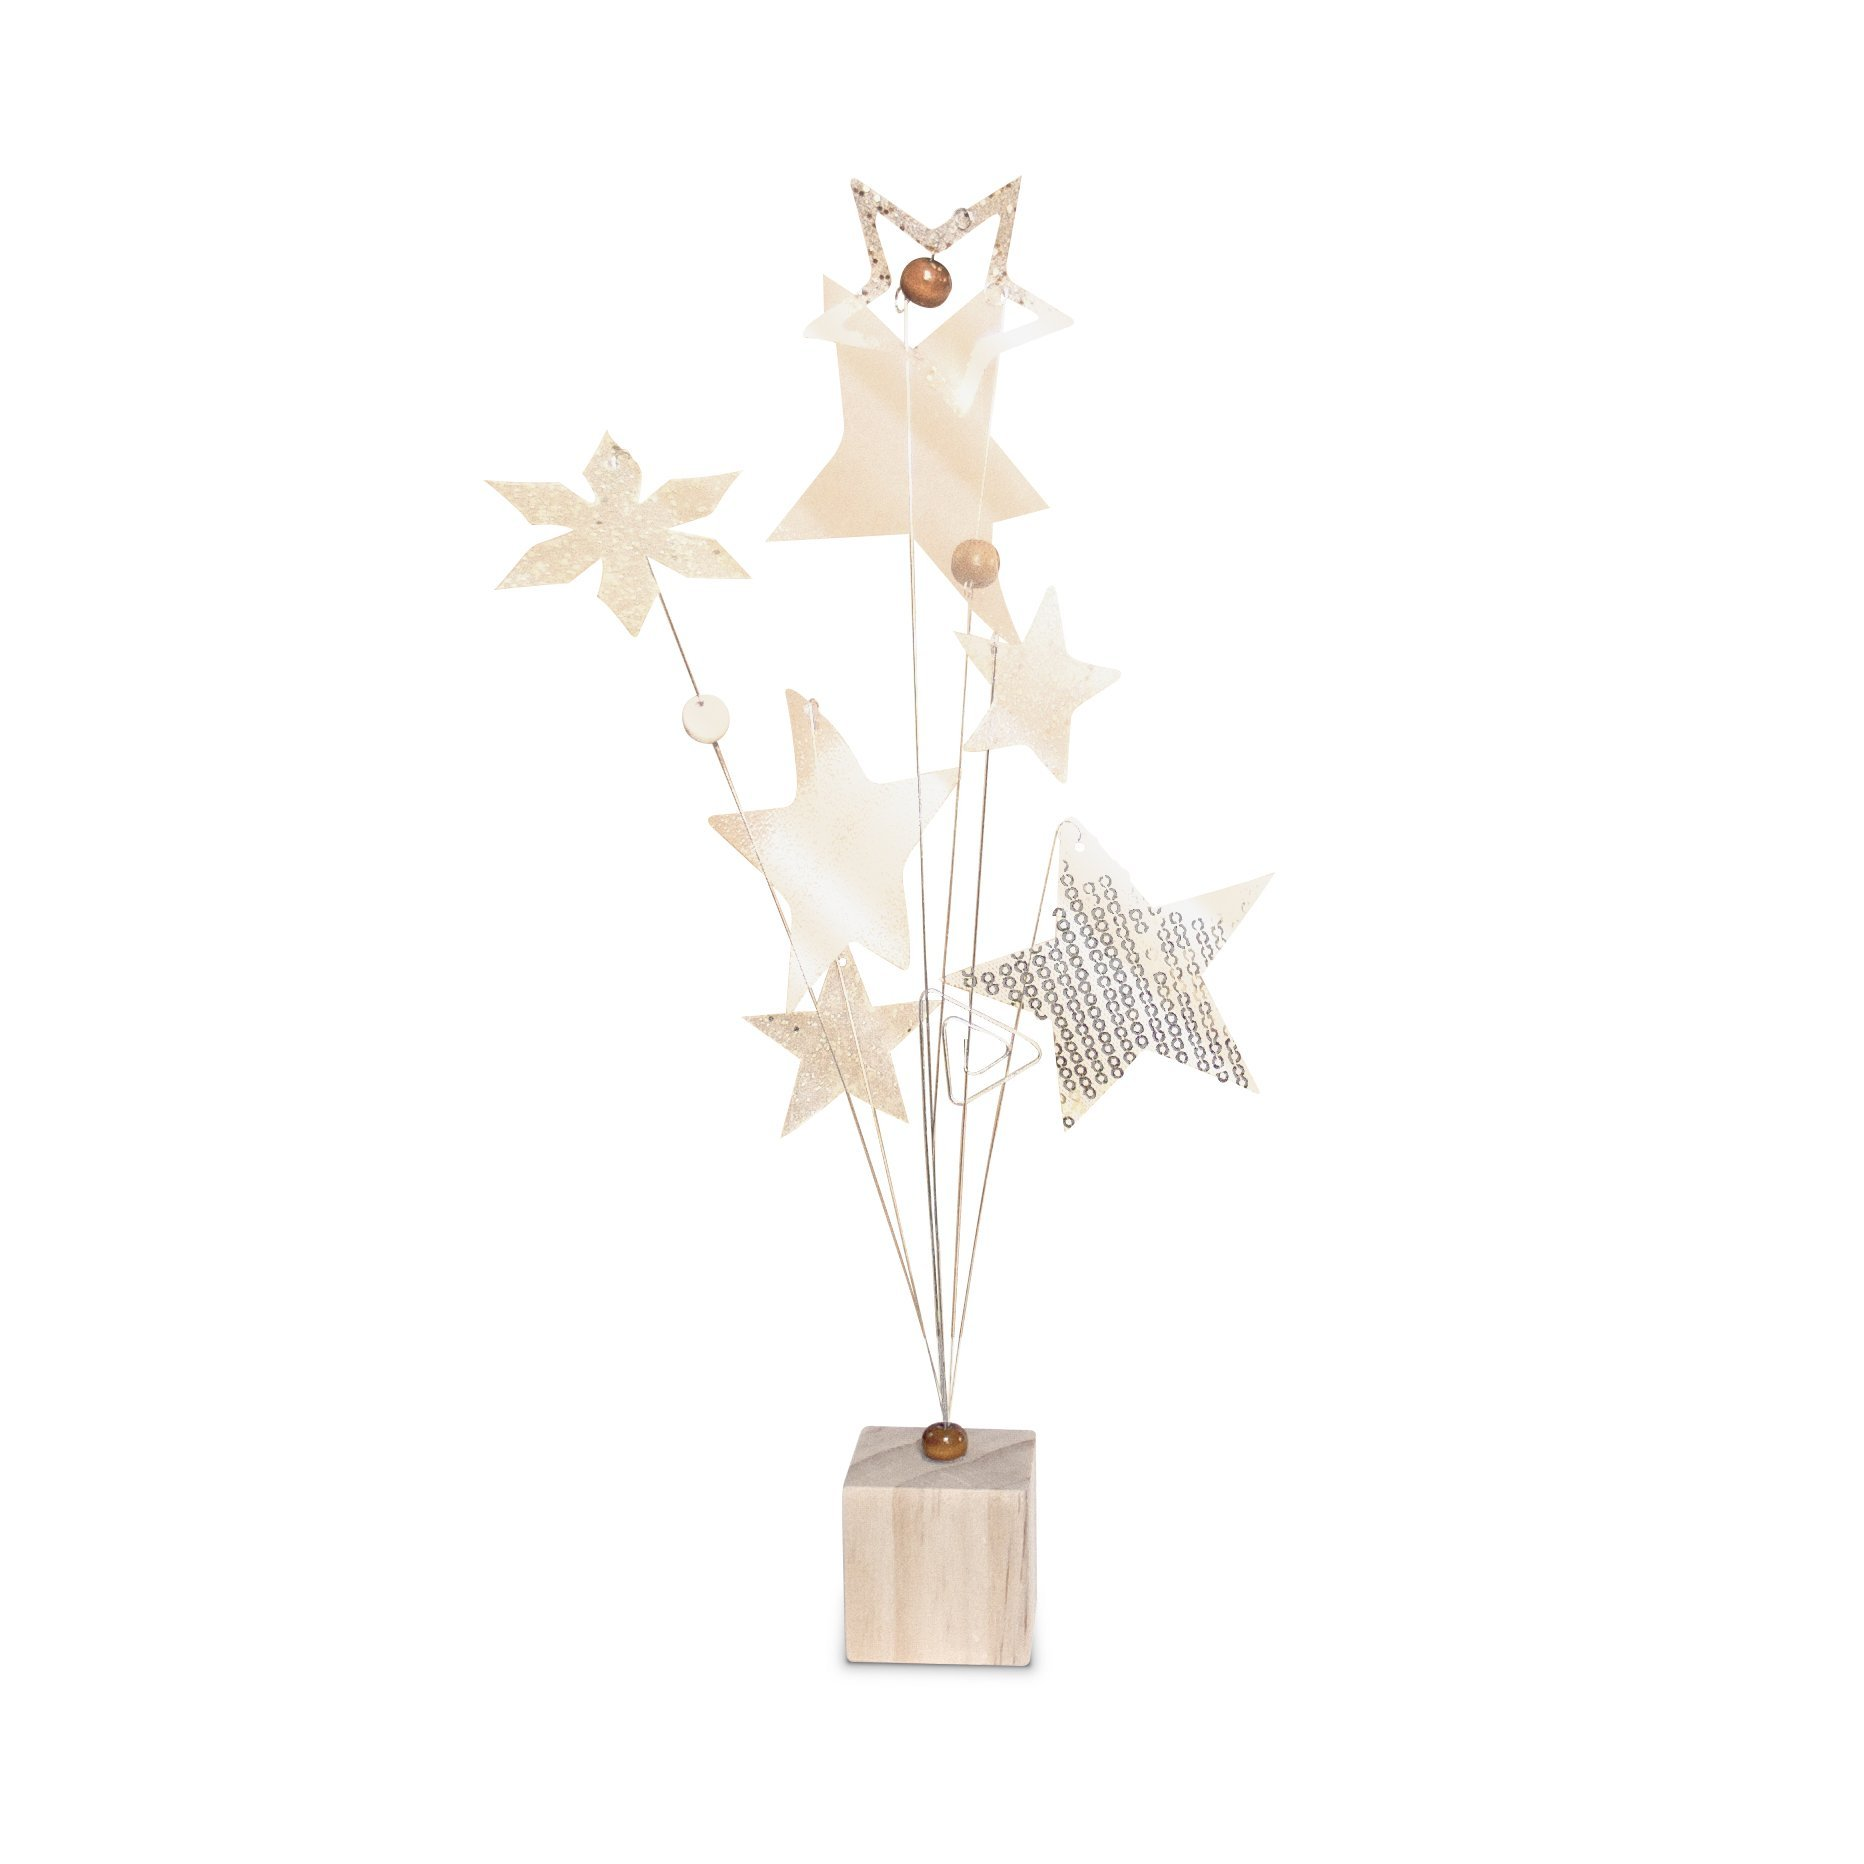 23 Bees   Table Centerpieces for Party   Photo Holder (Rustic Gold Handcrafted Star Design, 6 Pack)   Centerpiece Holders for Tables with Individual Card Number Slots   Dining Room & Kitchen Decor